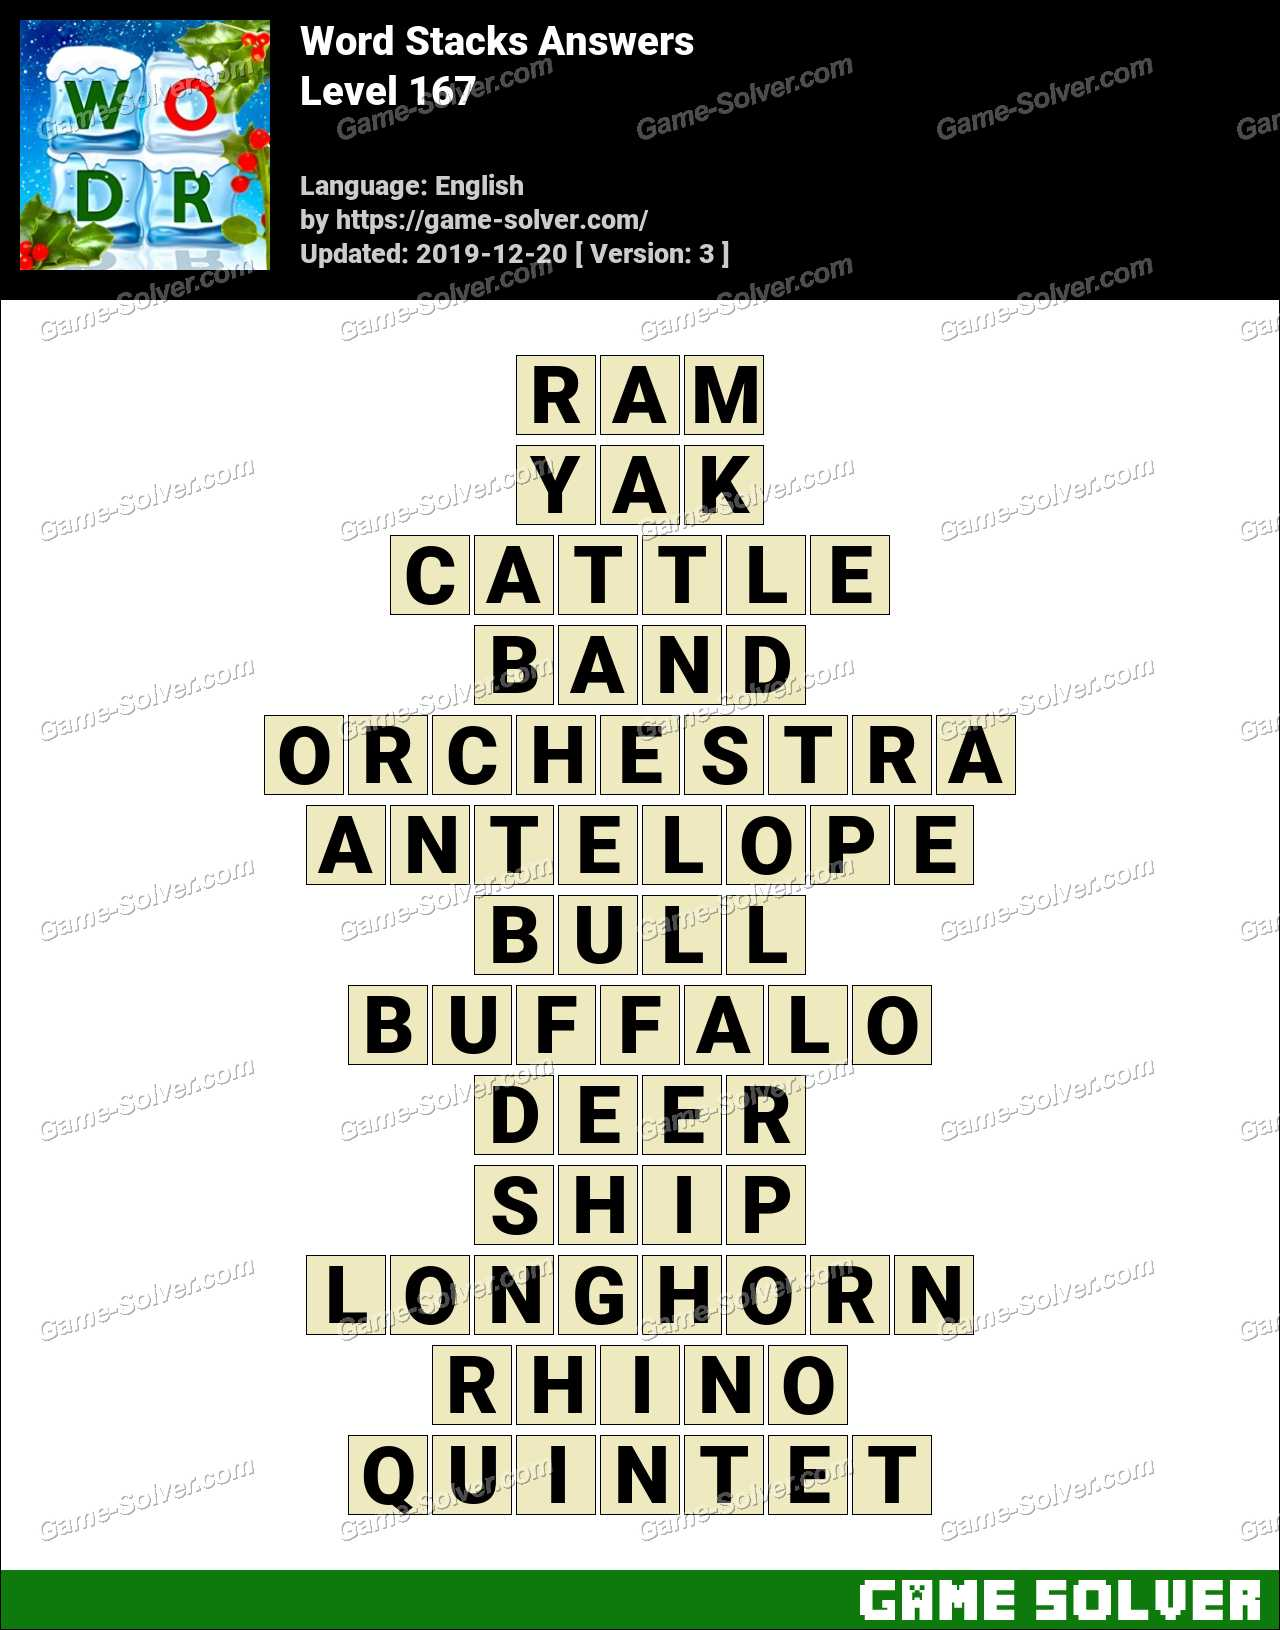 Word Stacks Level 167 Answers